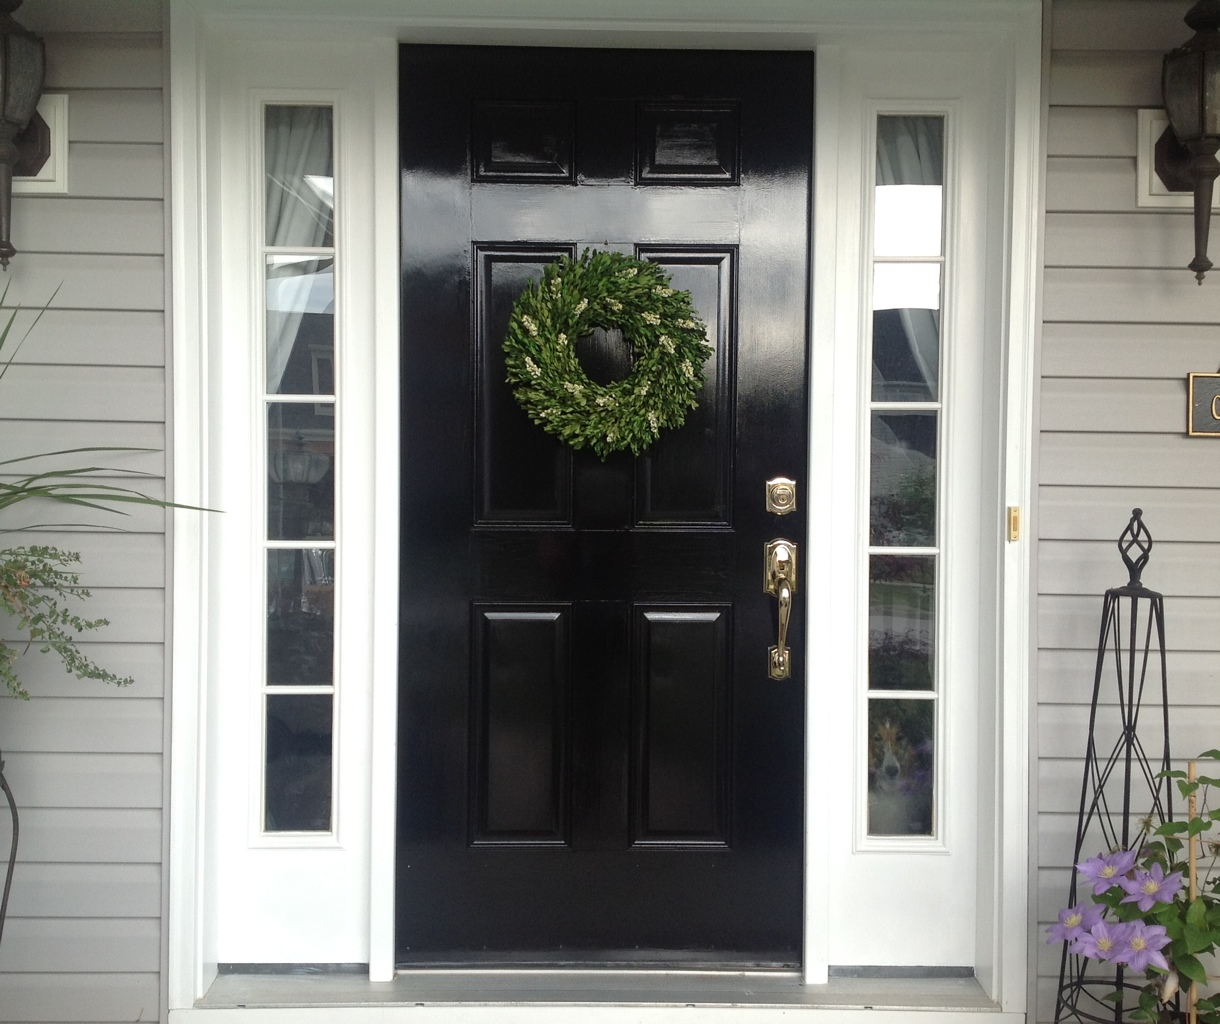 Chinoiserie Chic: The Chinoiserie Front Door - Glossy Black?